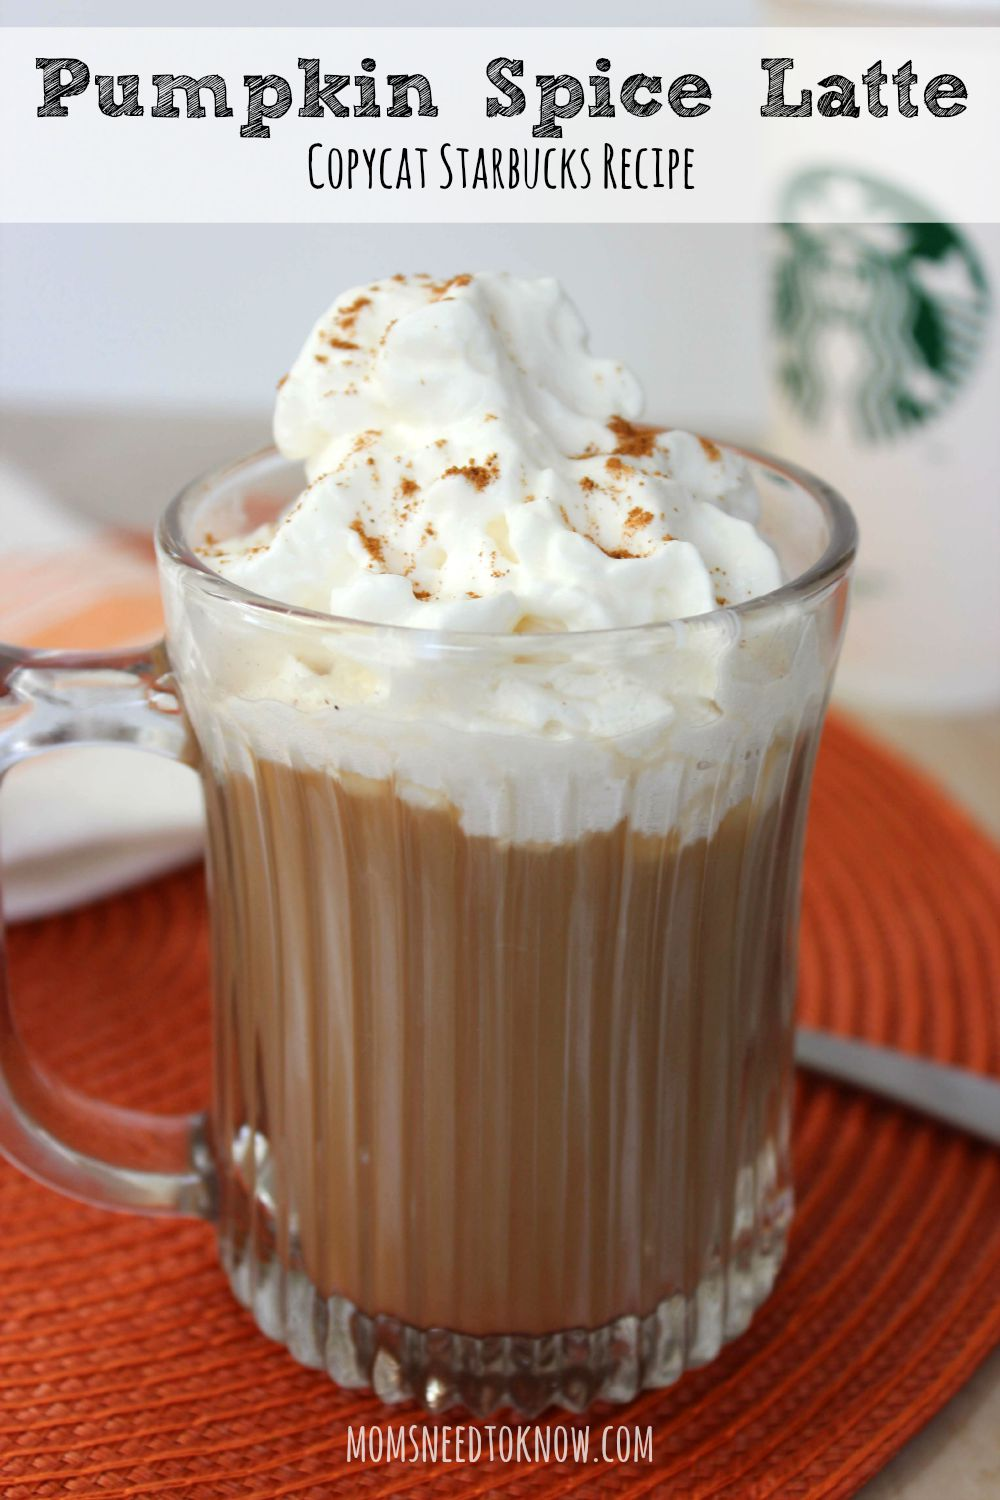 Pumpkin Spice Latte Copycat Starbucks recipe